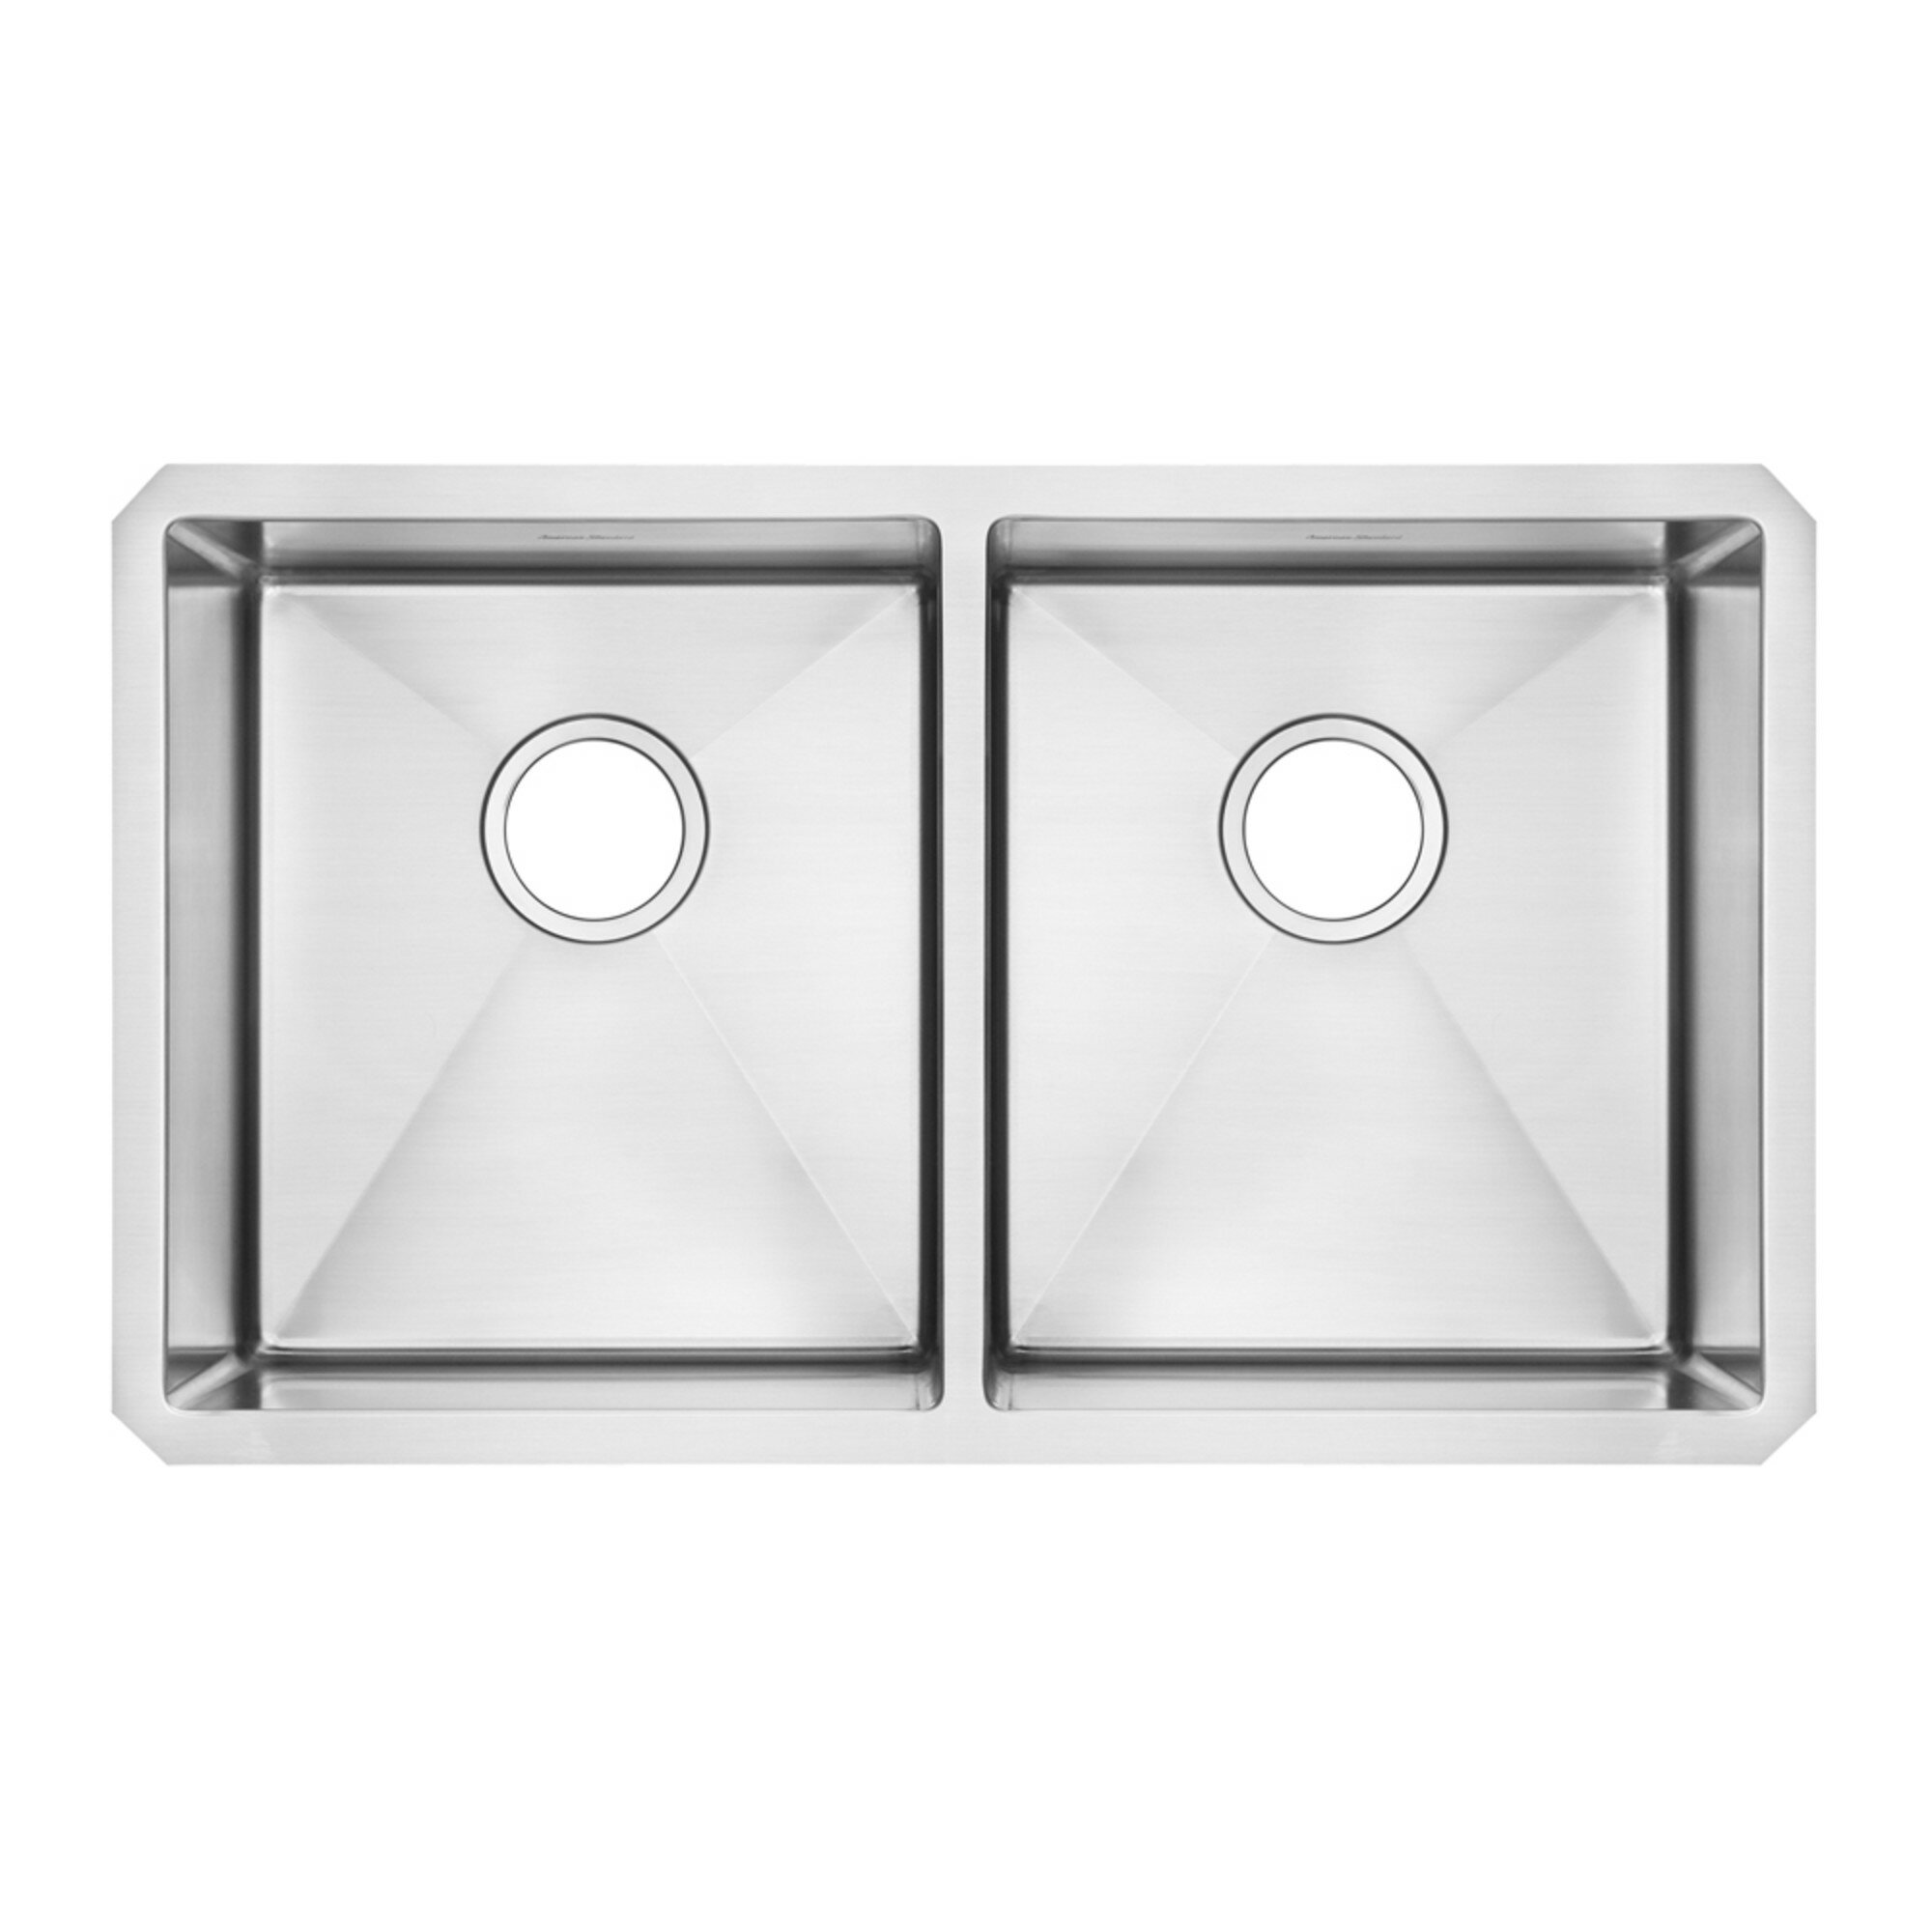 American Standard Pekoe 29 L X 18 W Double Basin Undermount Kitchen Sink With Grid And Drain Wayfair